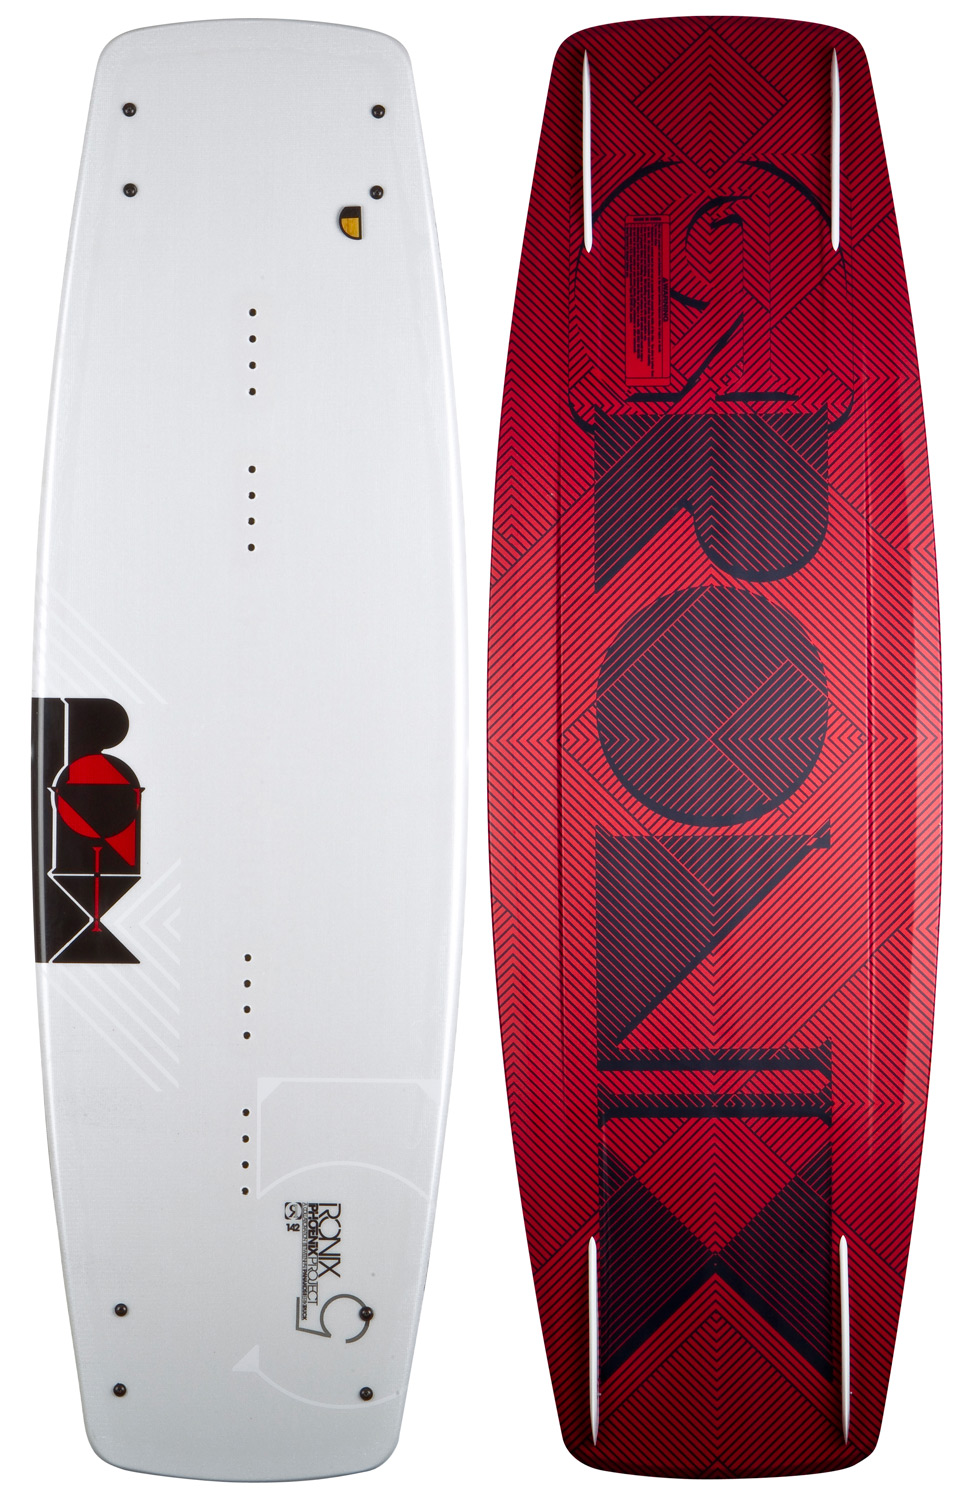 "Snowboard The phoenix project opens up a new spectrum of board designs and riding styles allowing a rider to push all the way up the wake, and as the tail passes through the peak, it continues to build energy - not dampening the ride like most ""flex"" boards out there. A rider can feel the shift in board energy from the nose to the tail the longer they wait due to the unique lay up and wide 28"" stance option. A deck that you session more like your favorite snowboard, timing the wake with a later pop. Or just ride it like a traditional board with a mellower snap and super forgiving landings. With the phoenix project's thinner profile and blended glass, you can feel a balance point- while pressing rails, the board flexes until it locks. A newfangled shape, winning the 2011 alliance and transworld favorite board of the year honors, for riders that want more of a snow/skate feel leaving the wake and added control on rails, or that just have a conventional style and want a smoother overall ride. For decades, our engineers have been developing different layups of glass, constructions, woods and foams to create a board that does one thing, store energy. New for this year, we have the phoenix project - s, lighter, a later kick, more feel on the water and control on rails. Transworld wakeboarding editor's pick - ""the coolest board I have ever ridden"" voted best boat and cable board by 2 judges in the alliance magazine gear guide.* Full Center Rail Creates A Smooth Transferring Board From Edge To Edge -Blends To A More Vertical Sidewall In The Tip And Tail Allowing The Board To Ride Higher On The Water With More Glide Speed -Most Exaggerated Bottom Bevel Starts Out At 4 degree Blending To 18 degree On The Ends Super Forgiving And Less Likely To Get Hung Up On Rails -Deep Symmetrical Channels * Help With Acceleration Thru A Turn And Push The Rider Into The Wake -Subtle Tunnel More Efficient Water Flow And Stabilizes Landings -Rocker Line Carries A Lot Of Speed Up The Wake Making It Easier For A Rider To Have A Late Take Off -Sintered Base * The Most Durable Non-Stick Base Material We Have Ever Tested On Rails Without Loosing Any Glide Speed On The Water -Blended Glass * Our Secret Concoction Absorbs More Energy Before Rebounding It * A Lightweight Woven Construction Brings Less Swing Weight And Increased Feel On The Water To The Board -Mod Pour * The Highest Strength To Weight Ratio We Have Ever Tested * Setting The Standard Of The Most Refined Recipe Of Foam Out There -4 Slider Fins * A Fin Actually Designed To Be Sessioned On Rails, Also For Riders That Like That Finless Feel, The Wider Design Creates Turbulence Giving It A Less Gratuitous Grip On The Water -4 Fiberglass 1.0"" Ramp Fins -Versatile Cable And Boat Board With A Controlled Flex -Ridden By Erik Ruck And Marc Rossiter - $236.95"